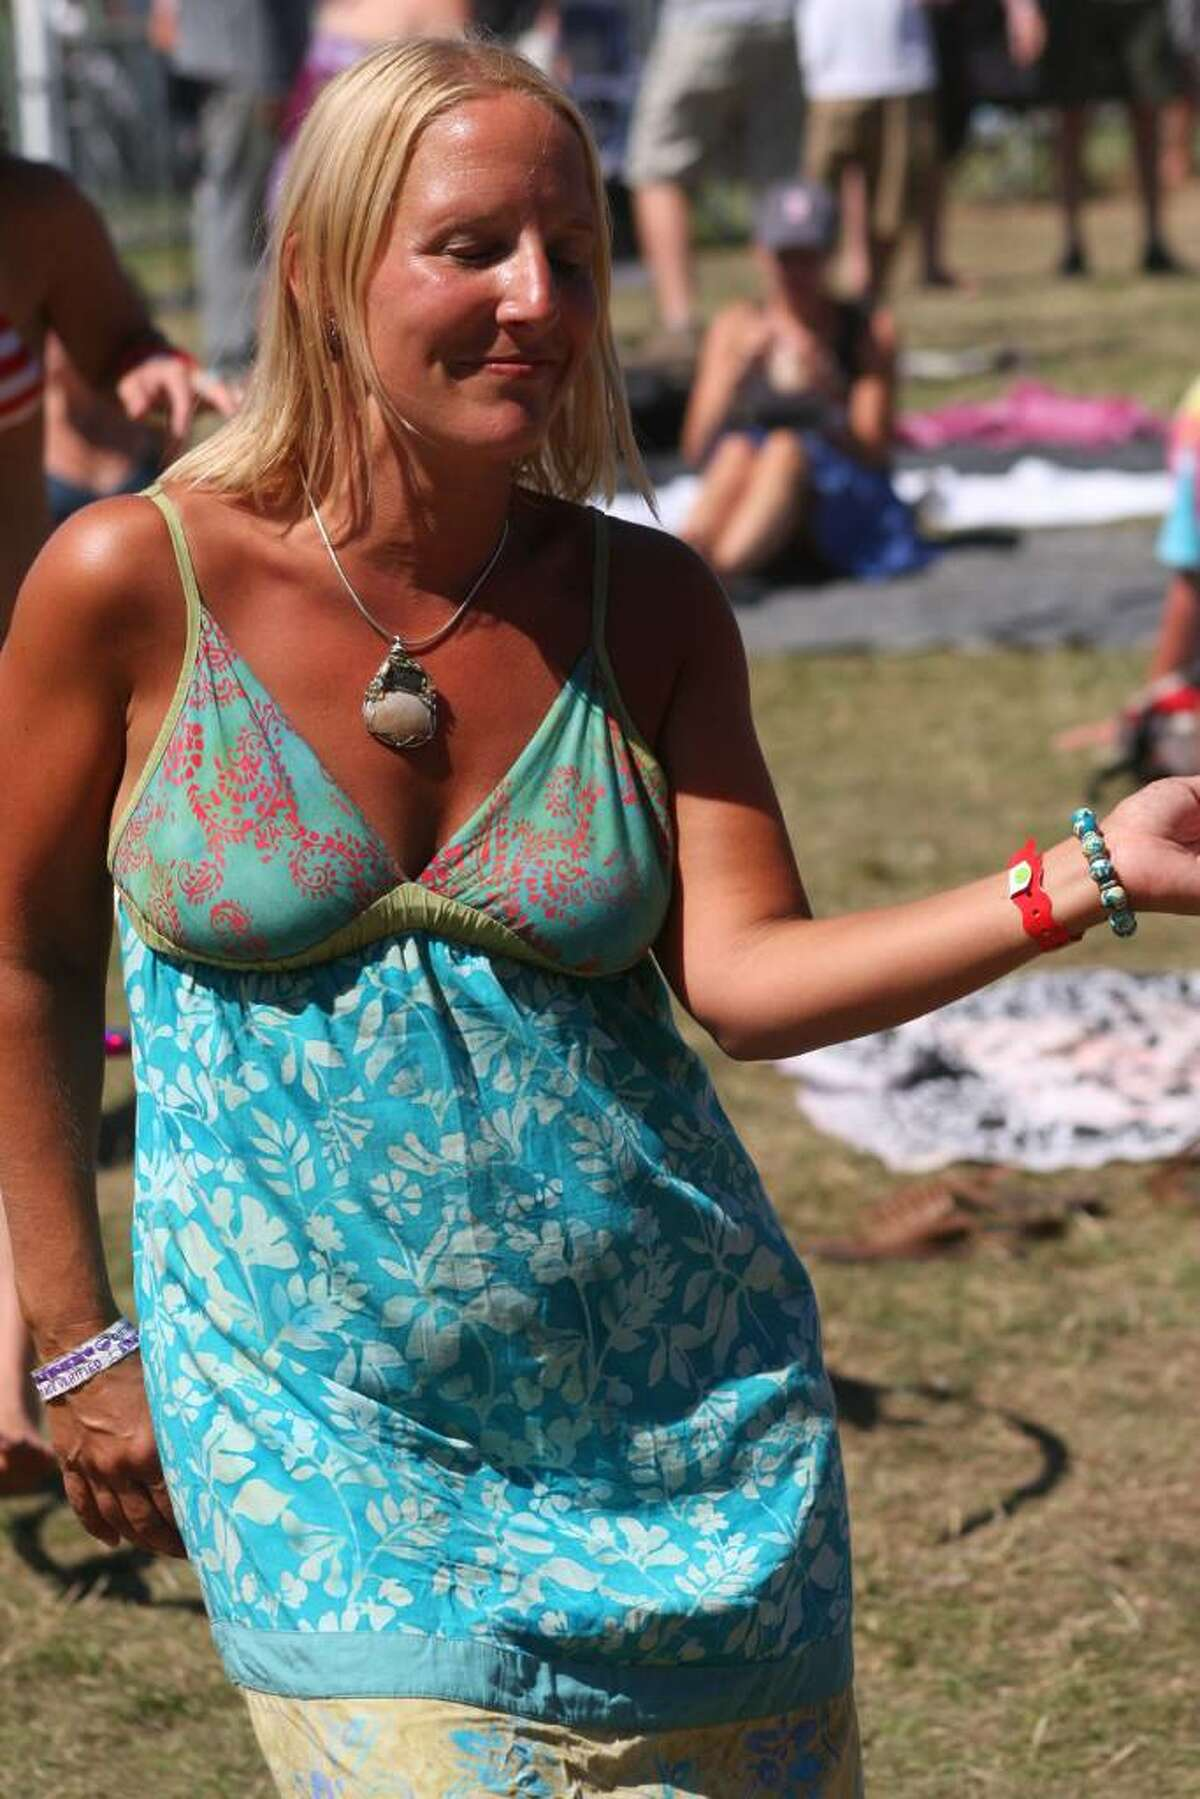 Everyone attending the annual Gathering of the Vibes festival in Bridgeport enjoyed a third day of great weather as they danced to the music of many different artists.